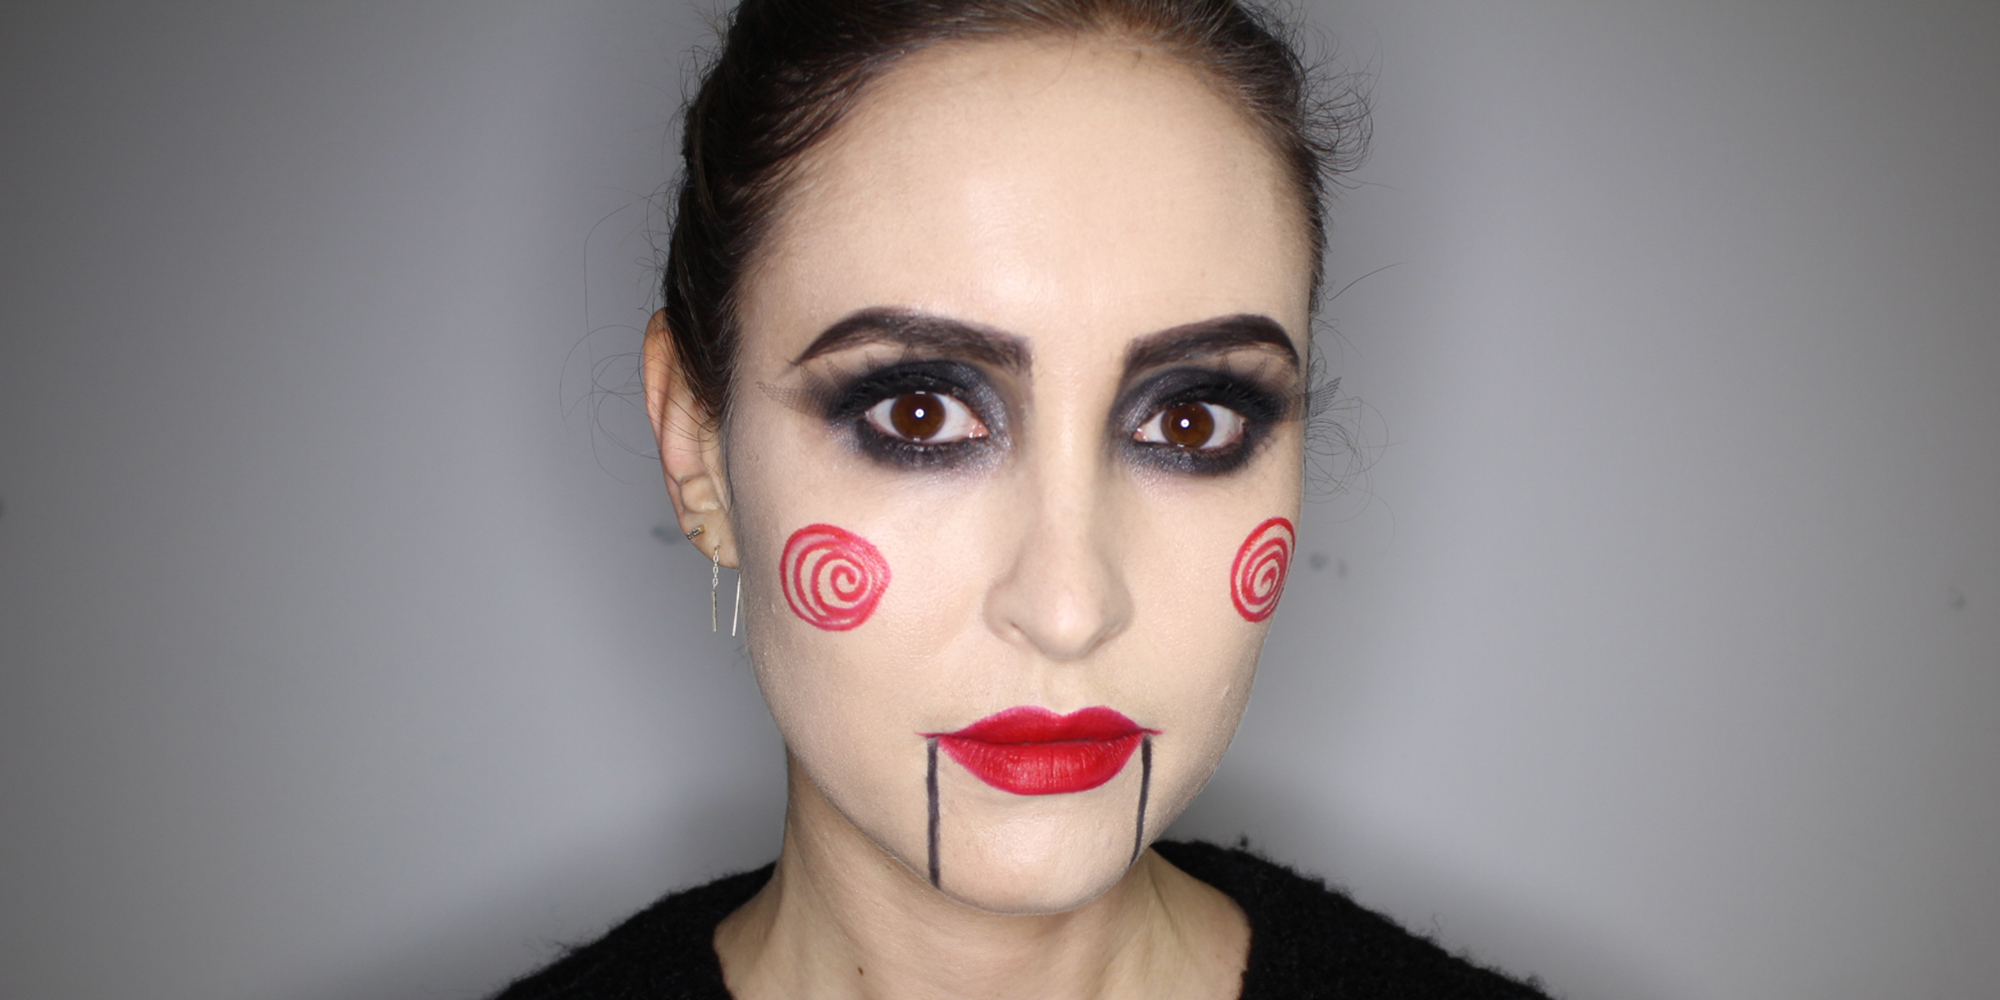 Halloween how to: The Saw psycho makeup look - How To Do Halloween Makeup